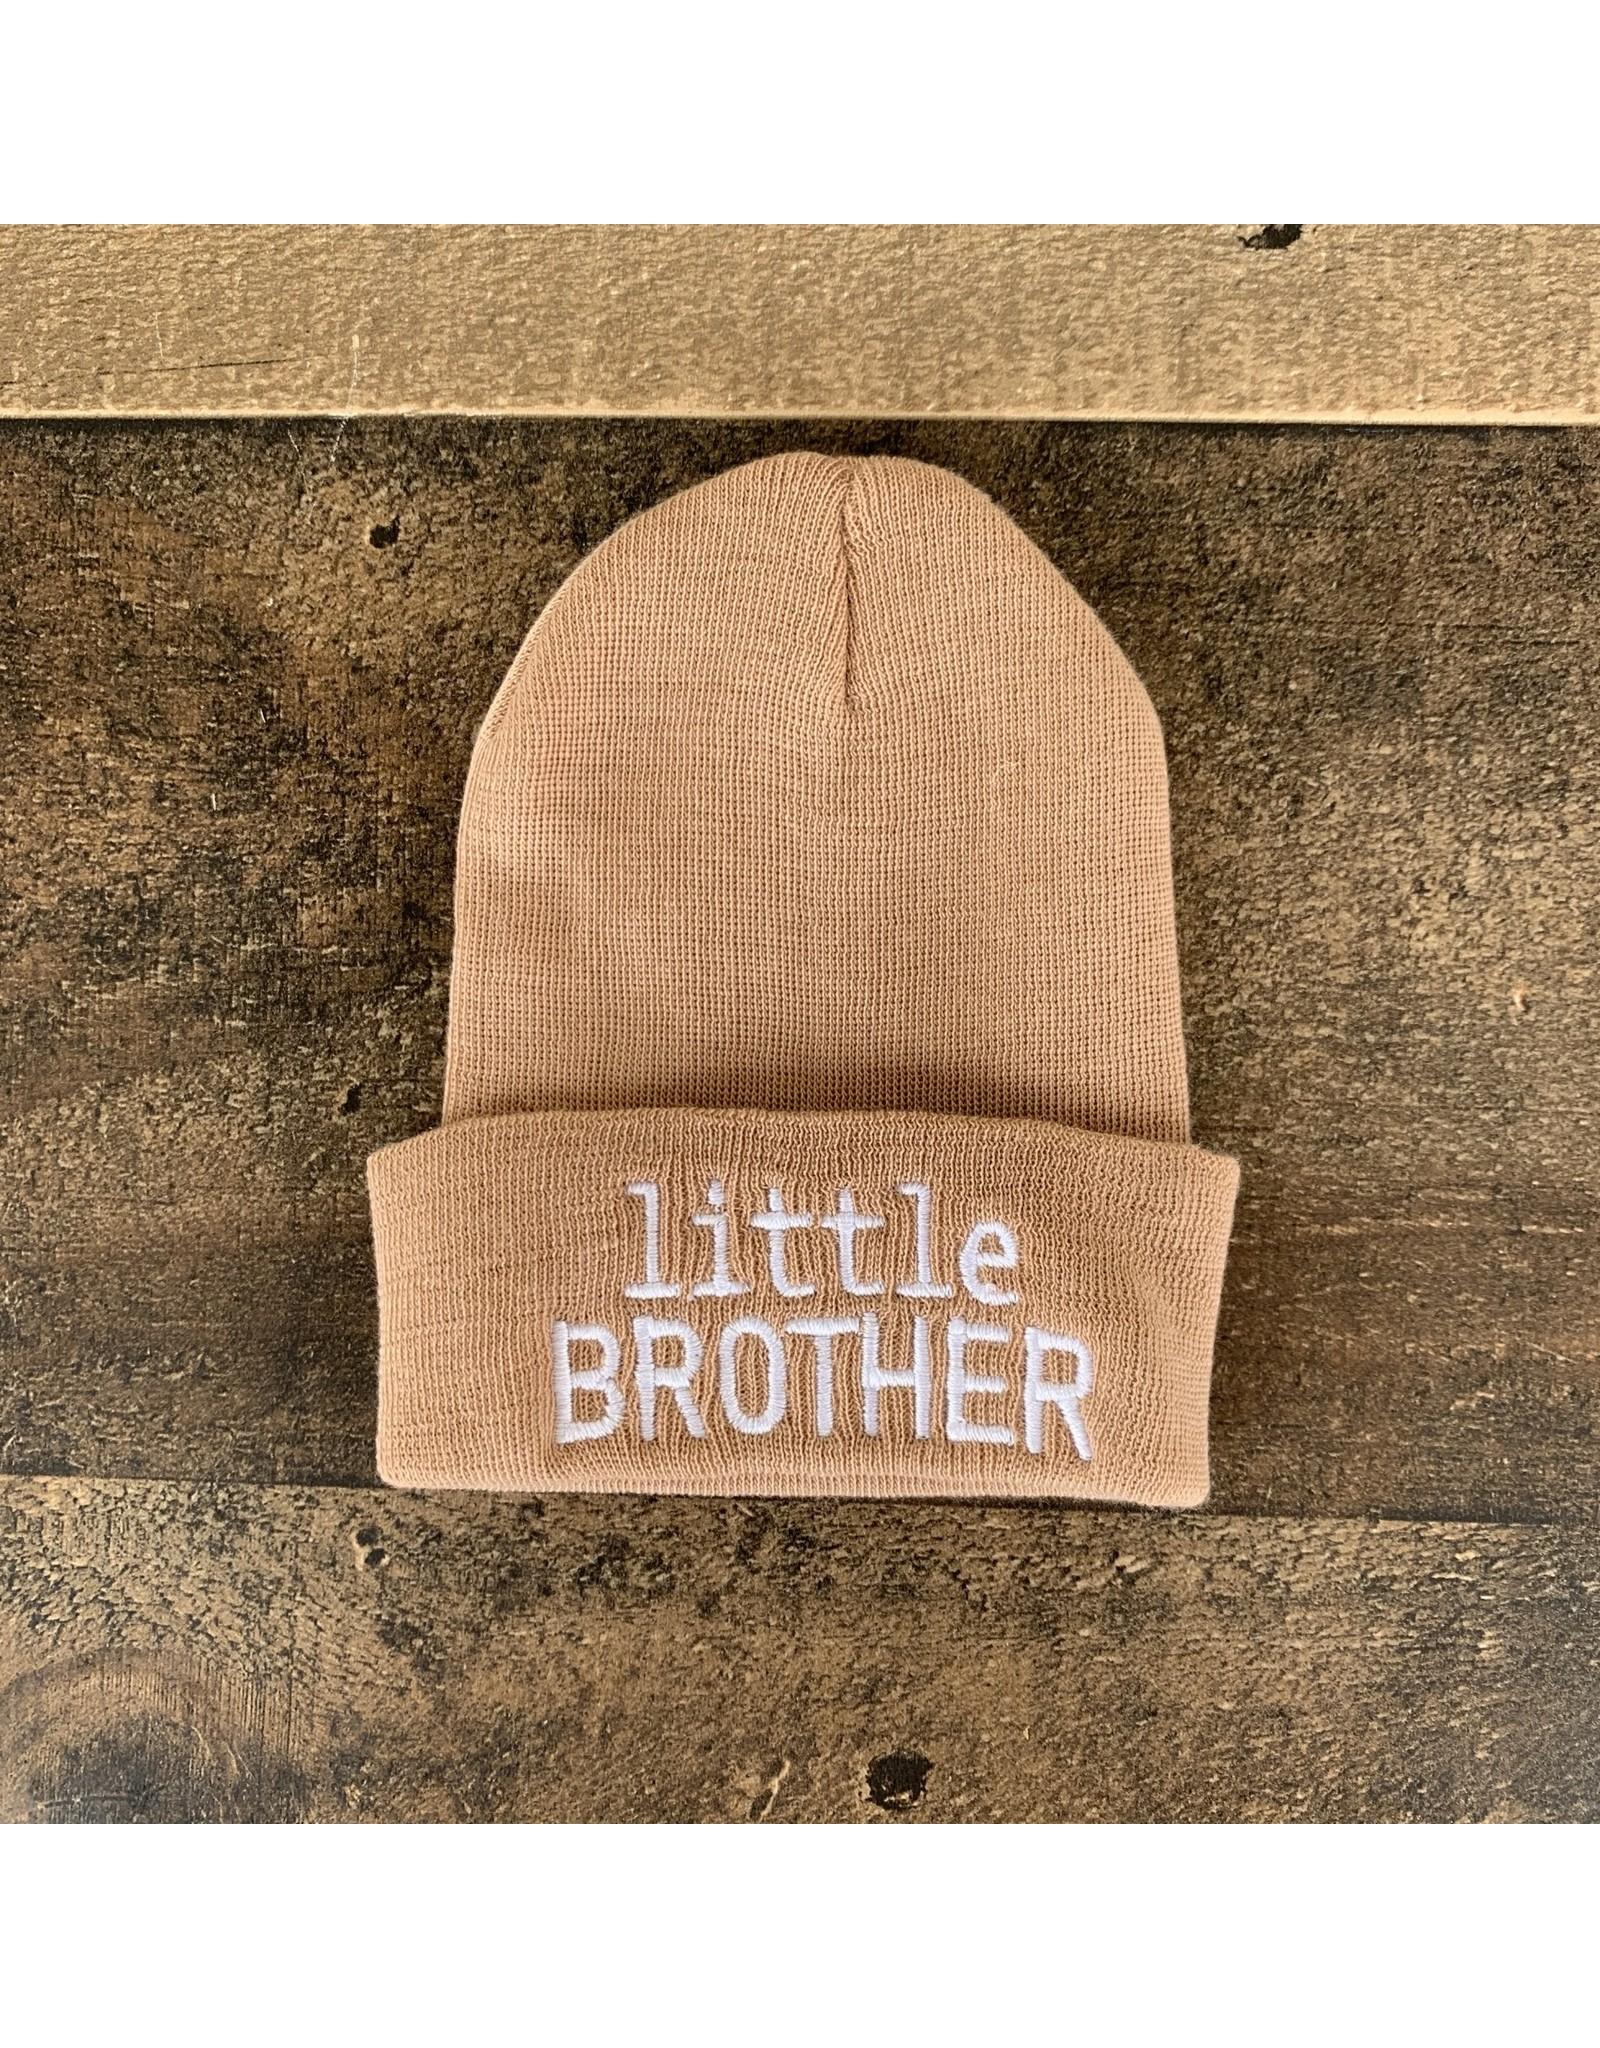 ILYBEAN Ilybean- 'little BROTHER' tan nursery beanie